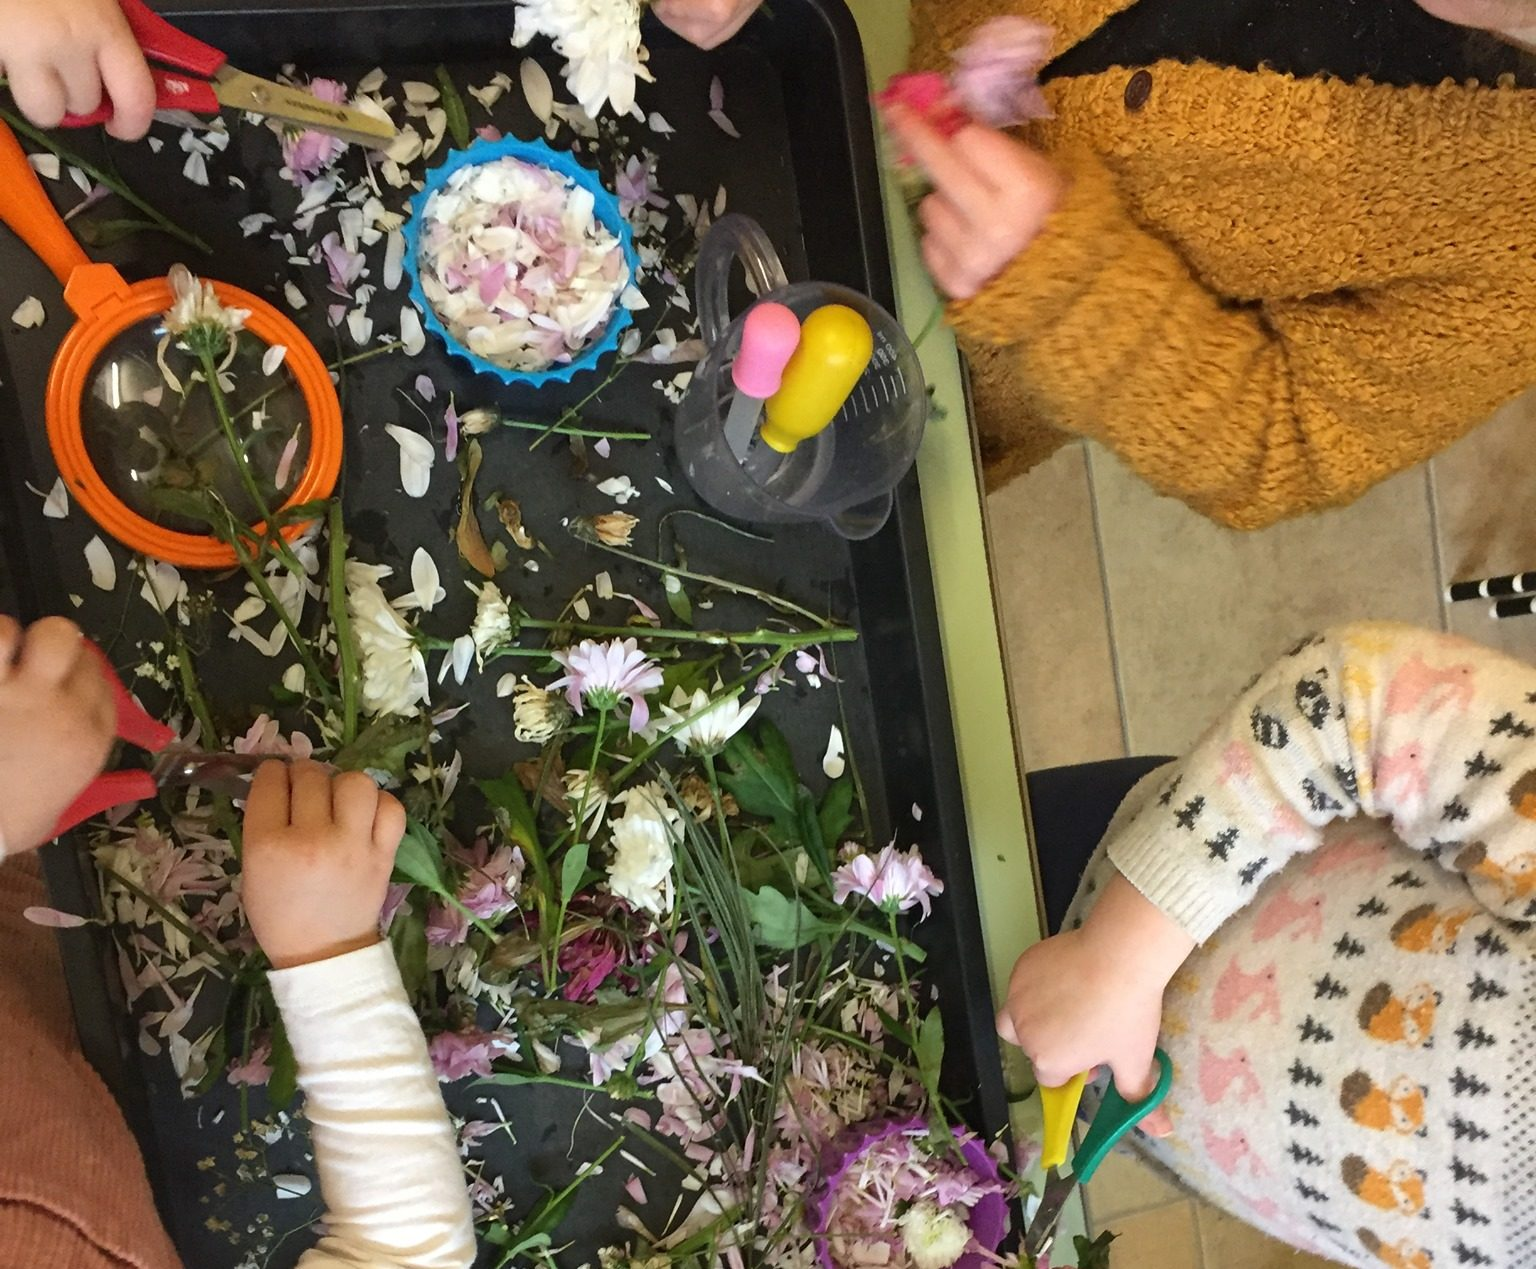 A photo showing the childrens sensory play